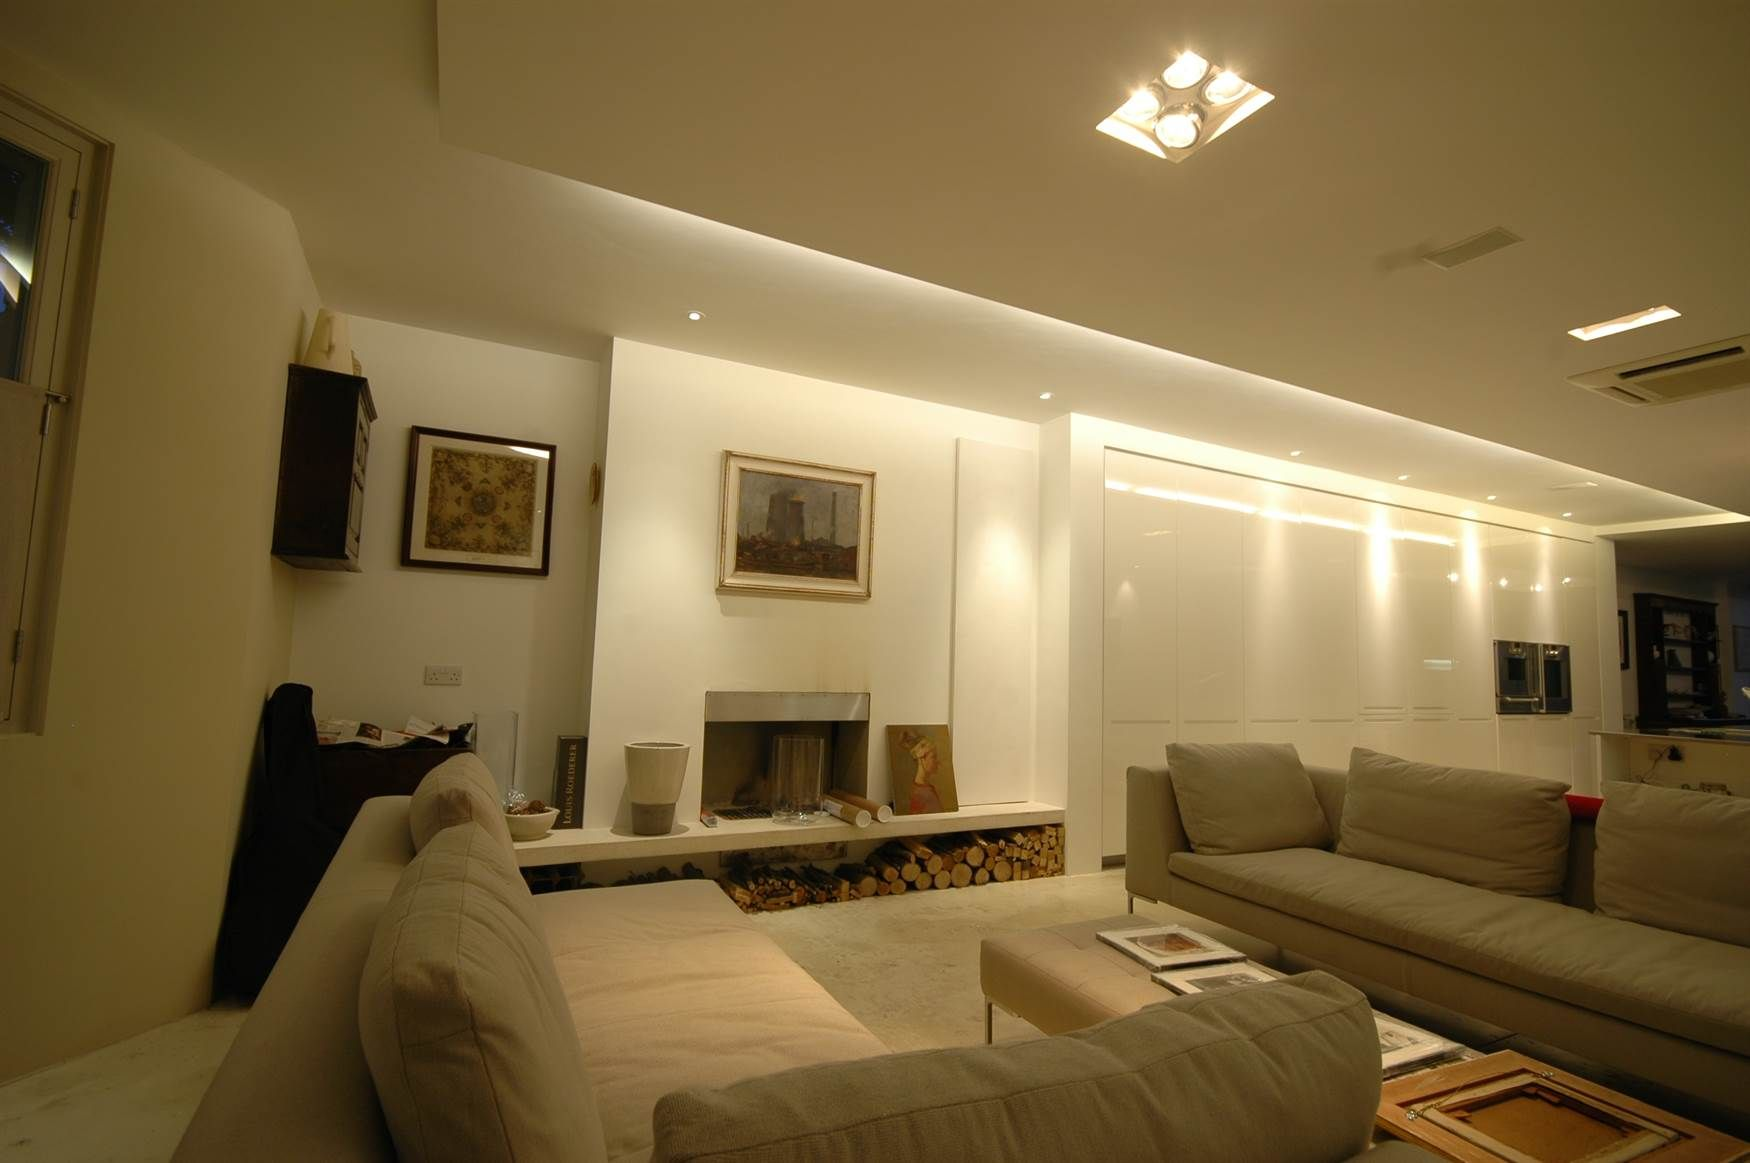 Living room lighting design mr resistor trimless grid downlights living room lighting design mr resistor trimless grid downlights aloadofball Gallery